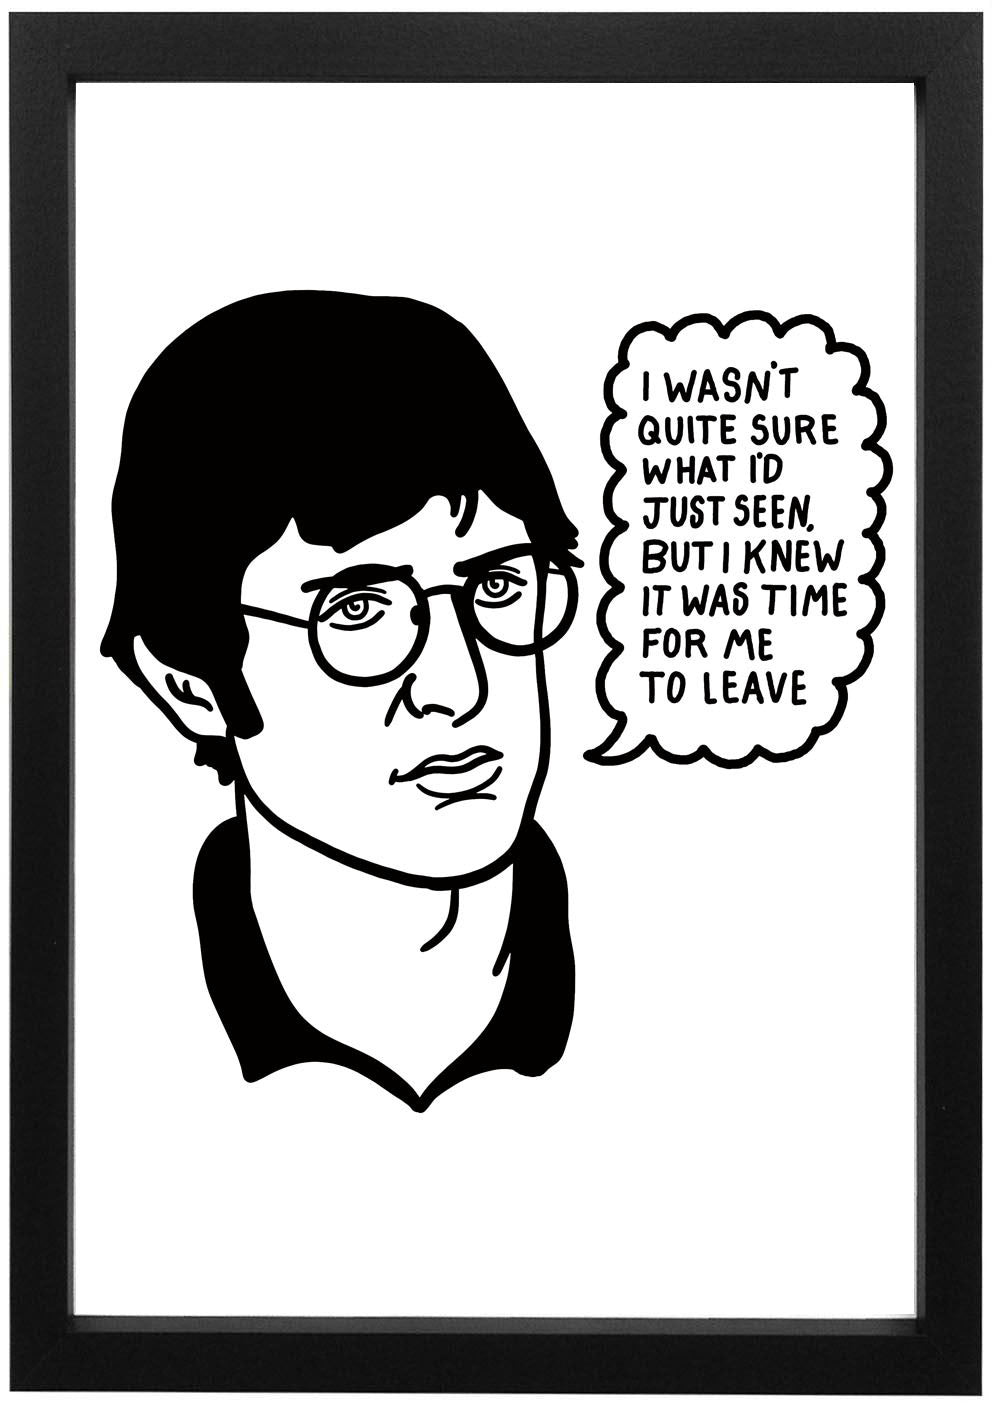 Louis Theroux - I wasn't quite sure Print - Jiggle Apparel